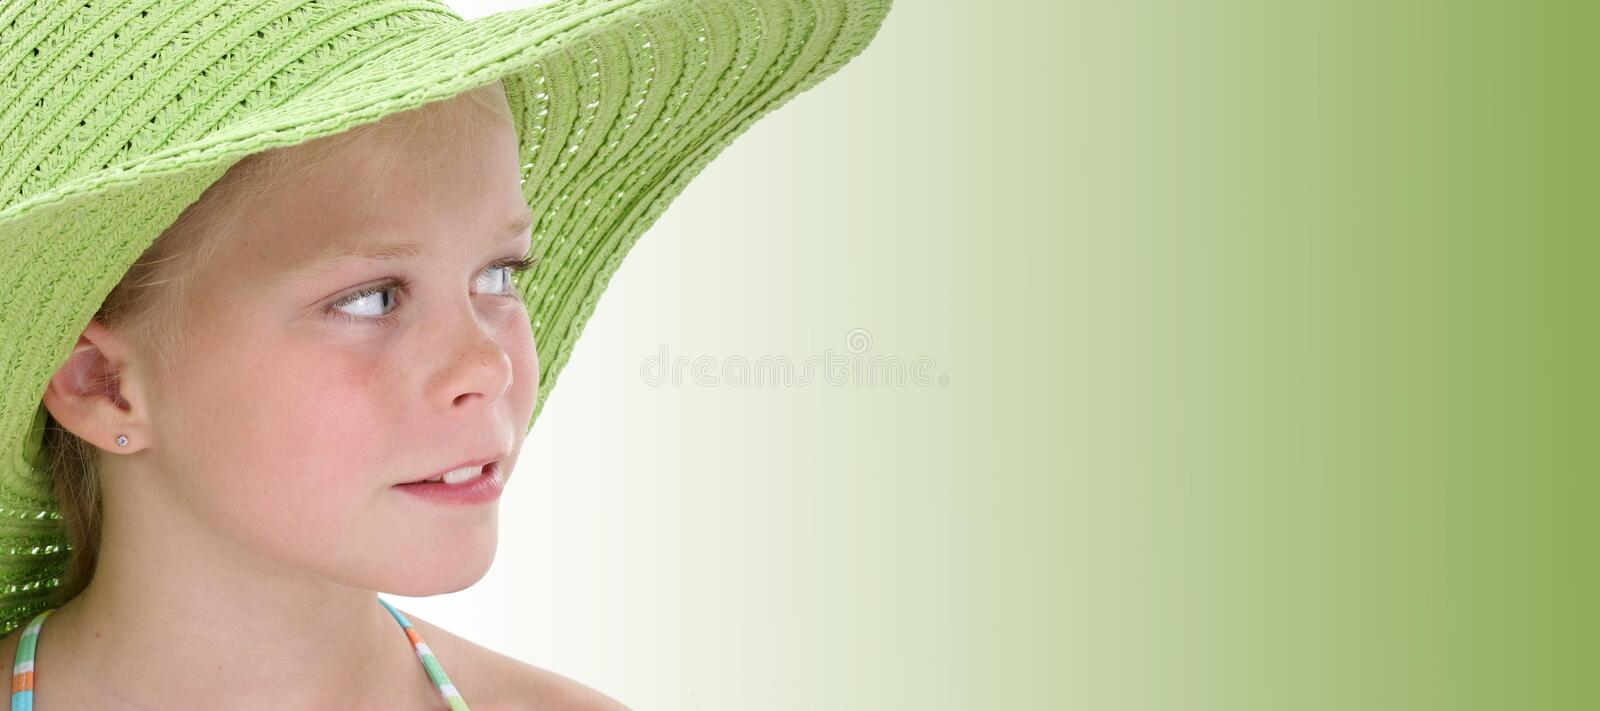 Download Beautiful Young Girl In Big Green Beach Hat Over Green Stock Photo - Image of blond, cute: 167636